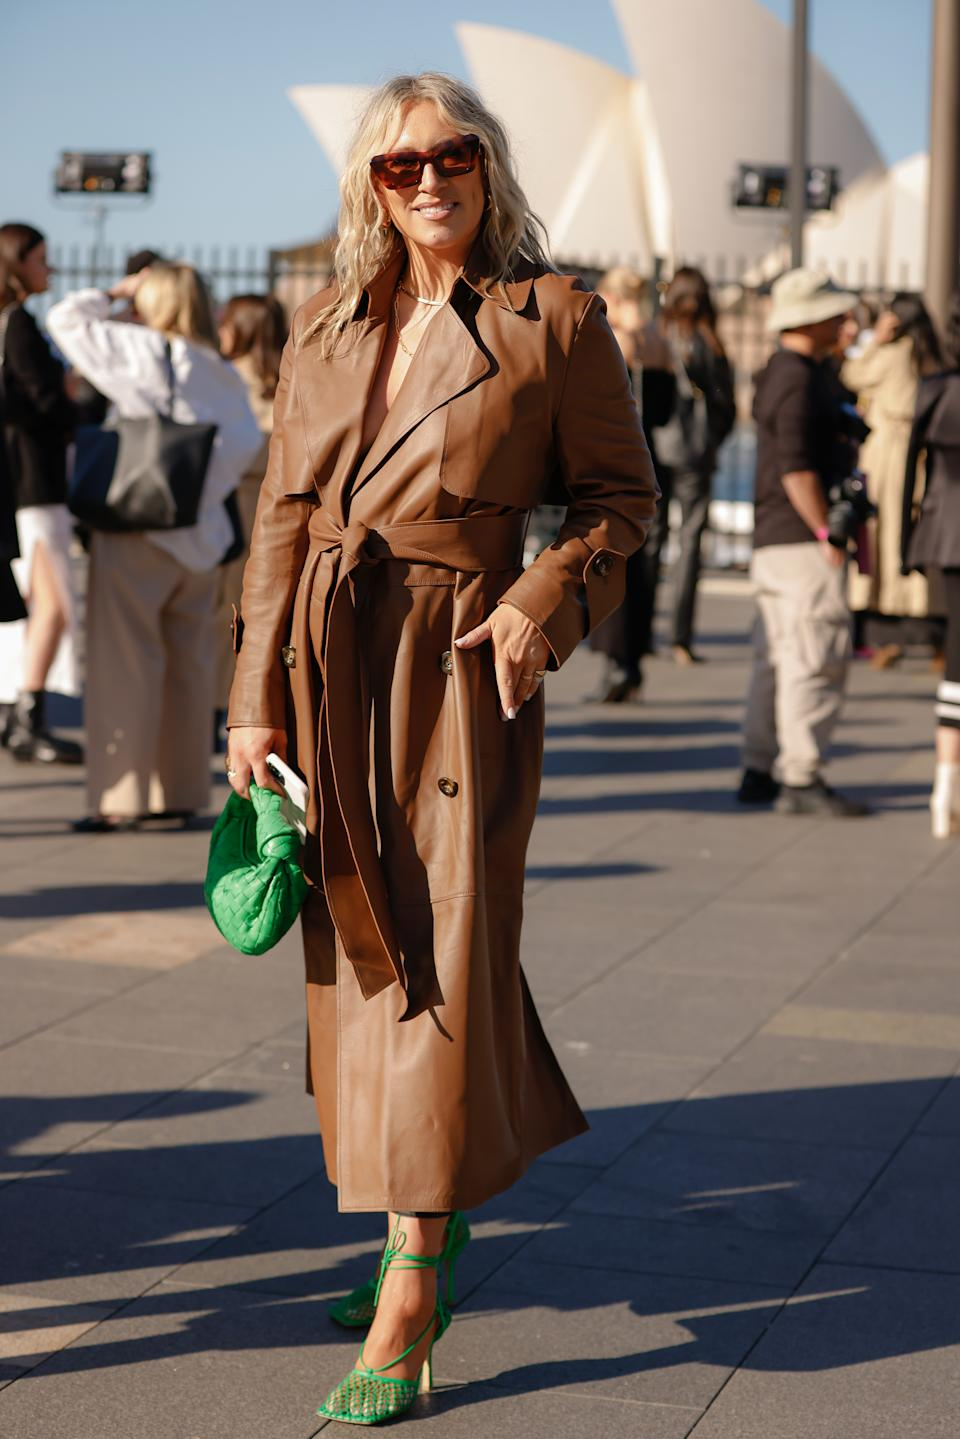 Phoebe Burgess wearing a Camilla And Marc leather trench coat and Bottega Veneta green bag and shoes at Afterpay Australian Fashion Week 2021 on May 31, 2021 in Sydney, Australia